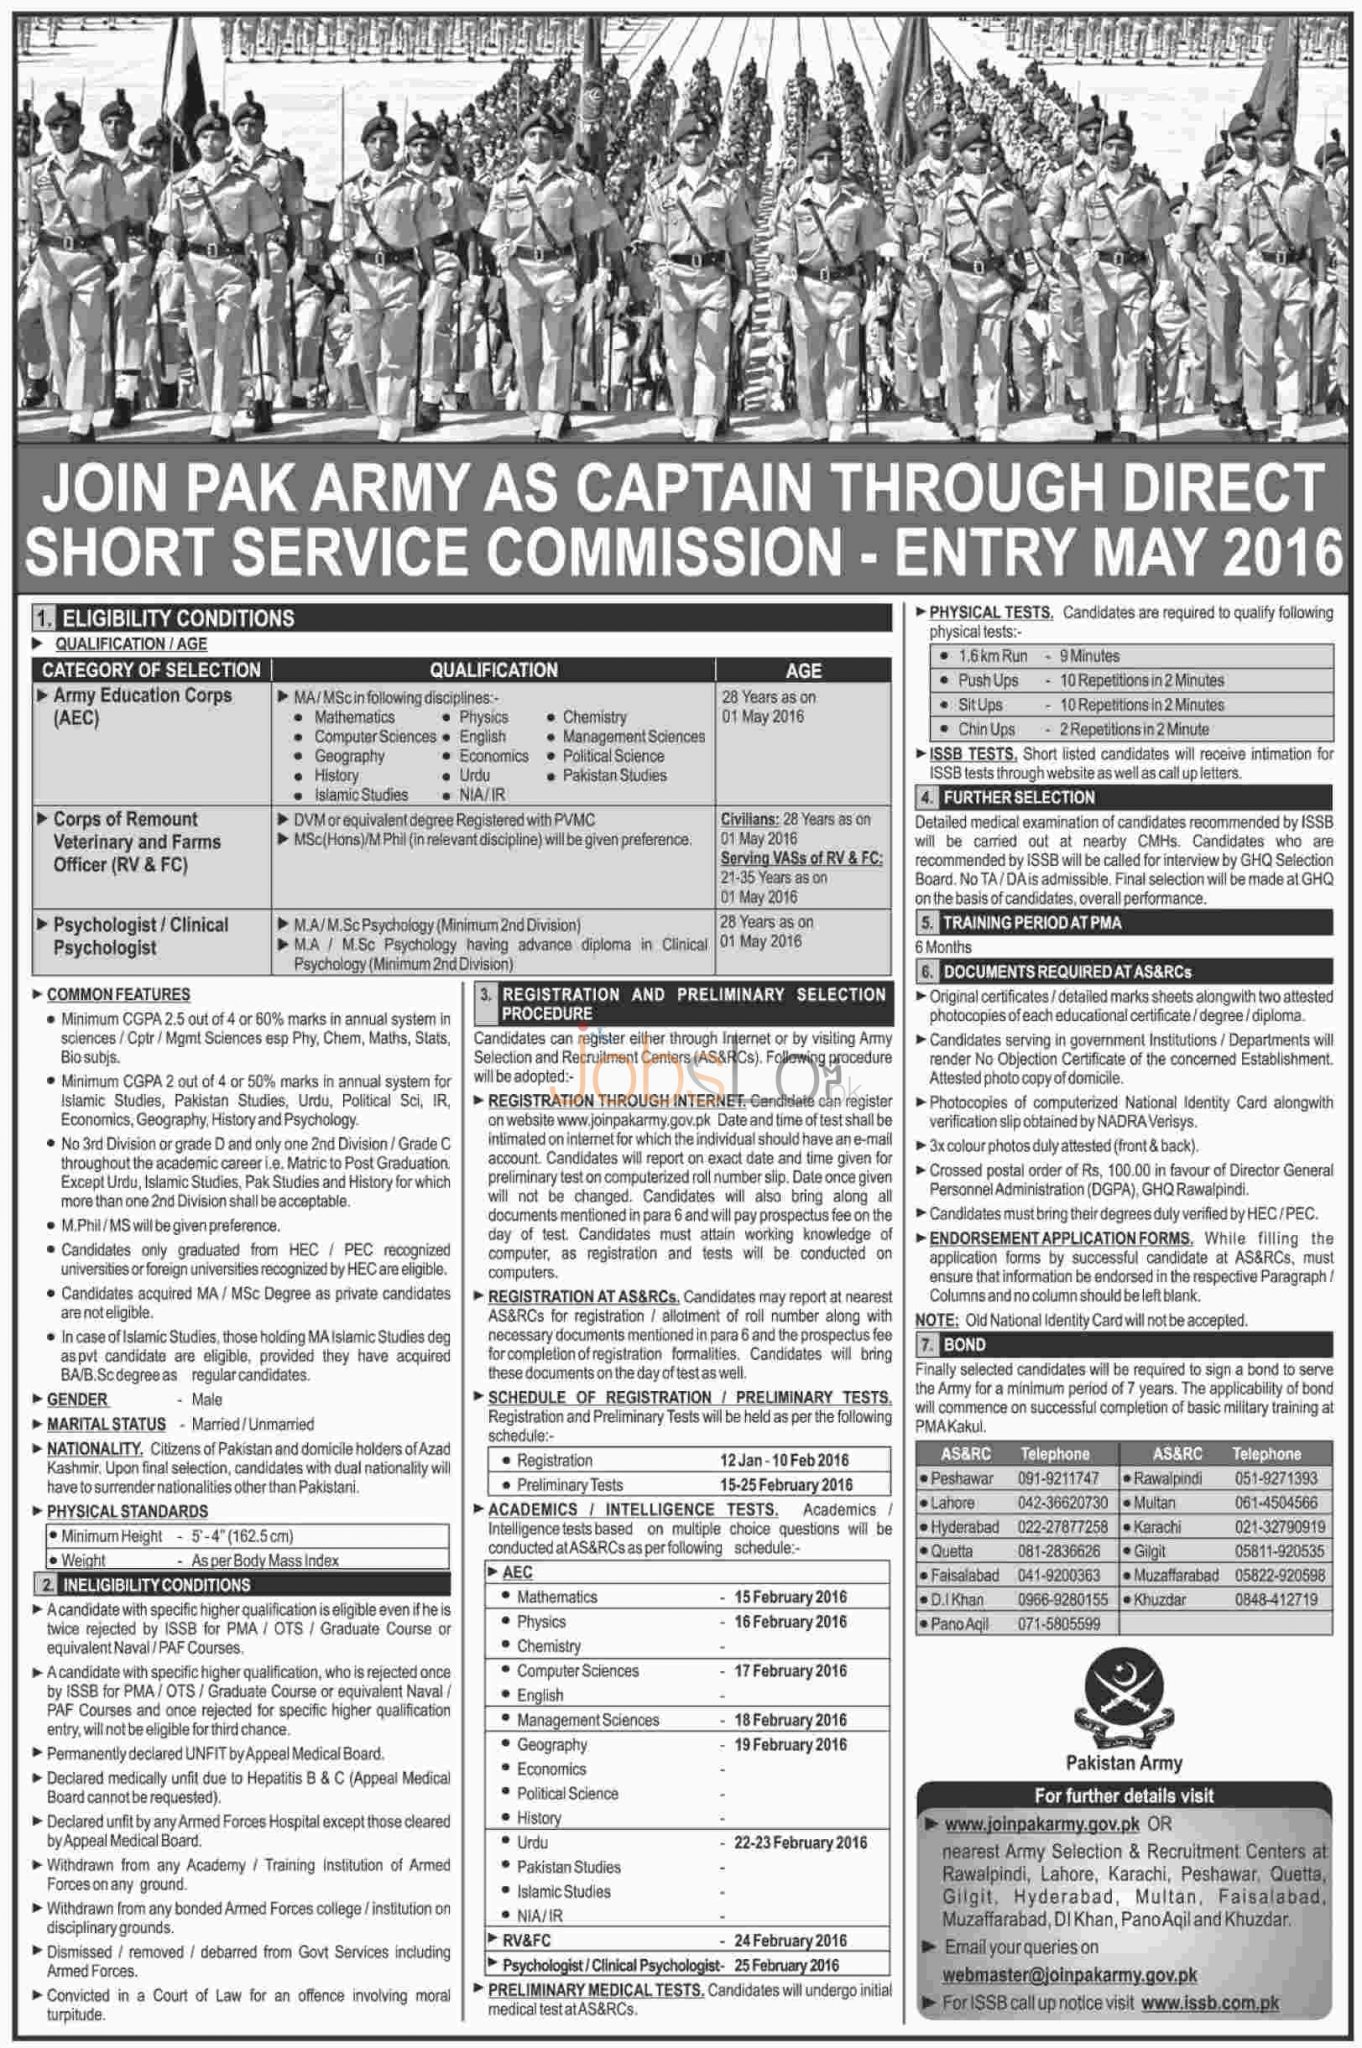 Recruitment Opportunities in Pakistan Army as Captain 2016